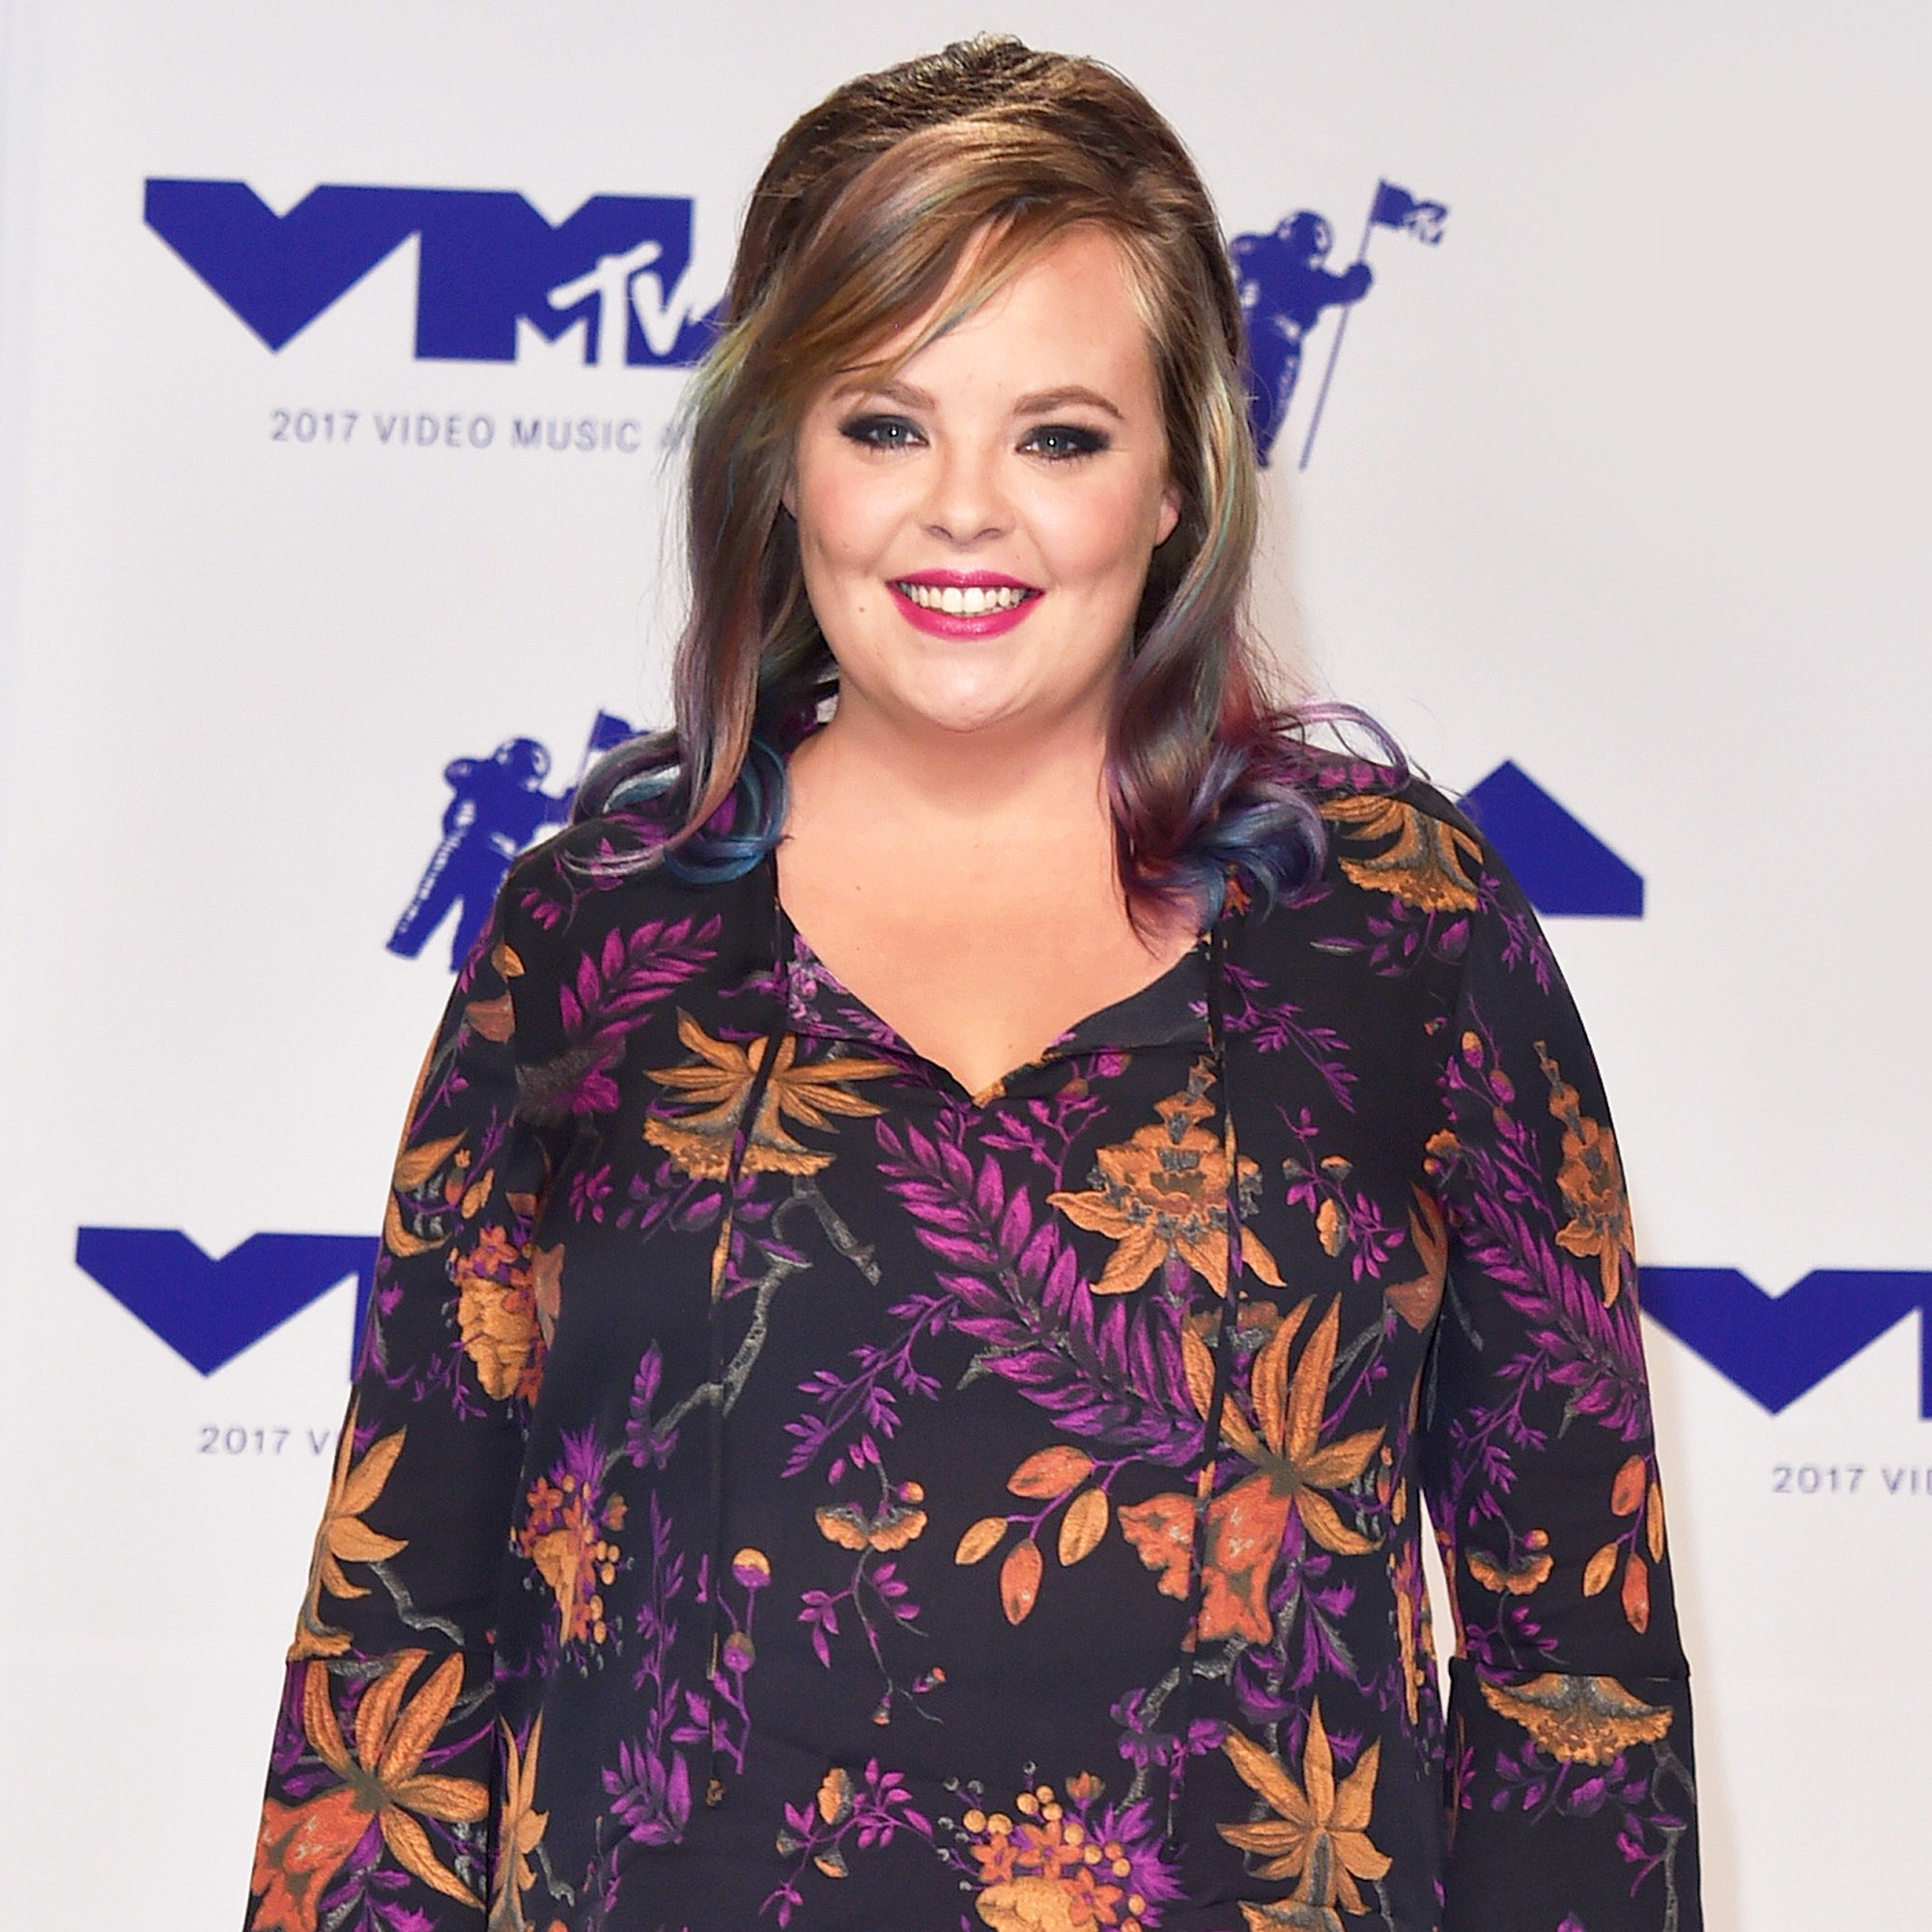 Catelynn Lowell attends the 2017 MTV Video Music Awards at The Forum in Inglewood, California.